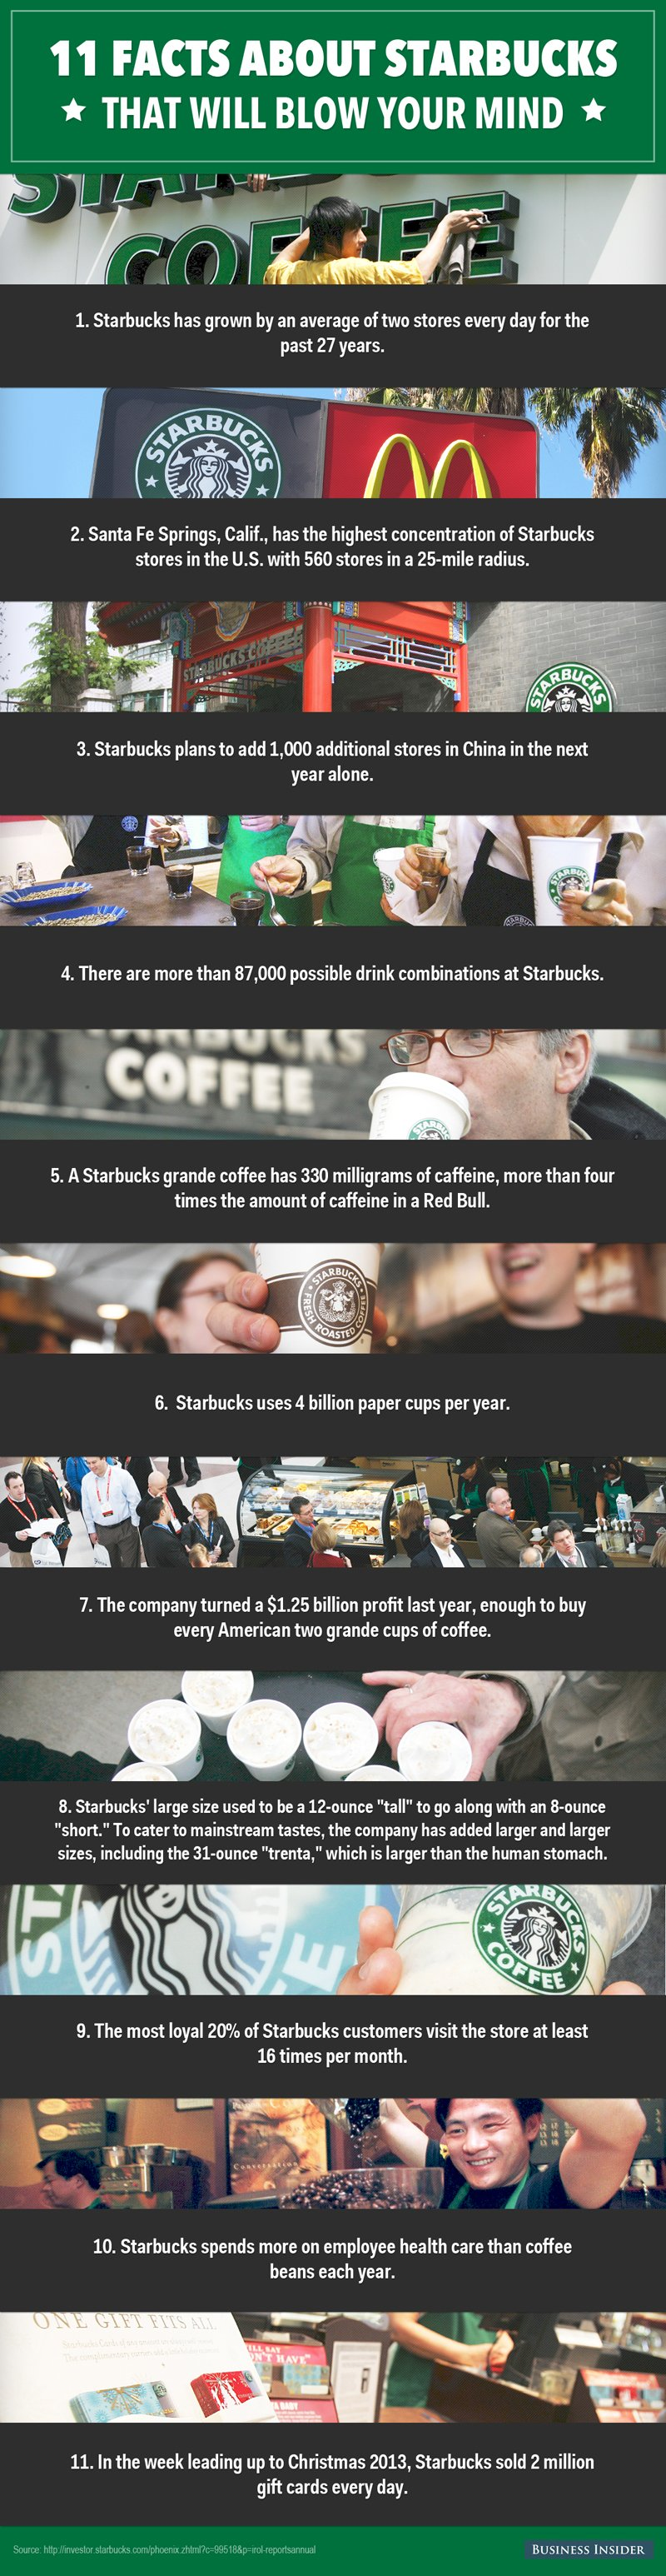 Starbucks Facts Infographic